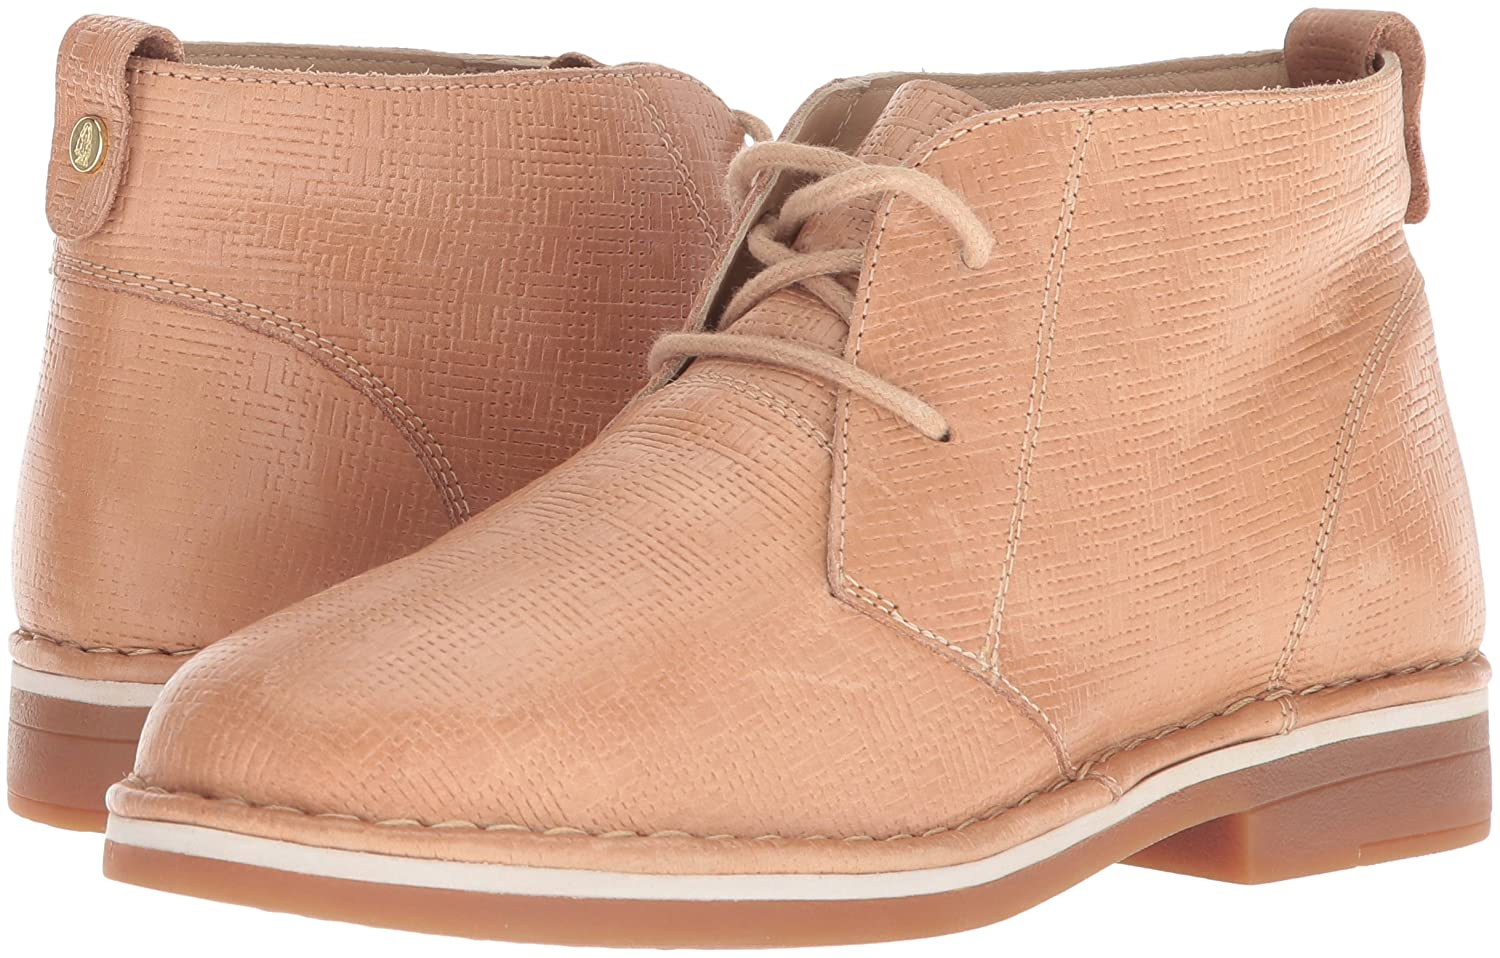 Hush Puppies Women's Cyra Catelyn Ankle Boot B0746X68YD 6 W US|Natural Embossed Leather